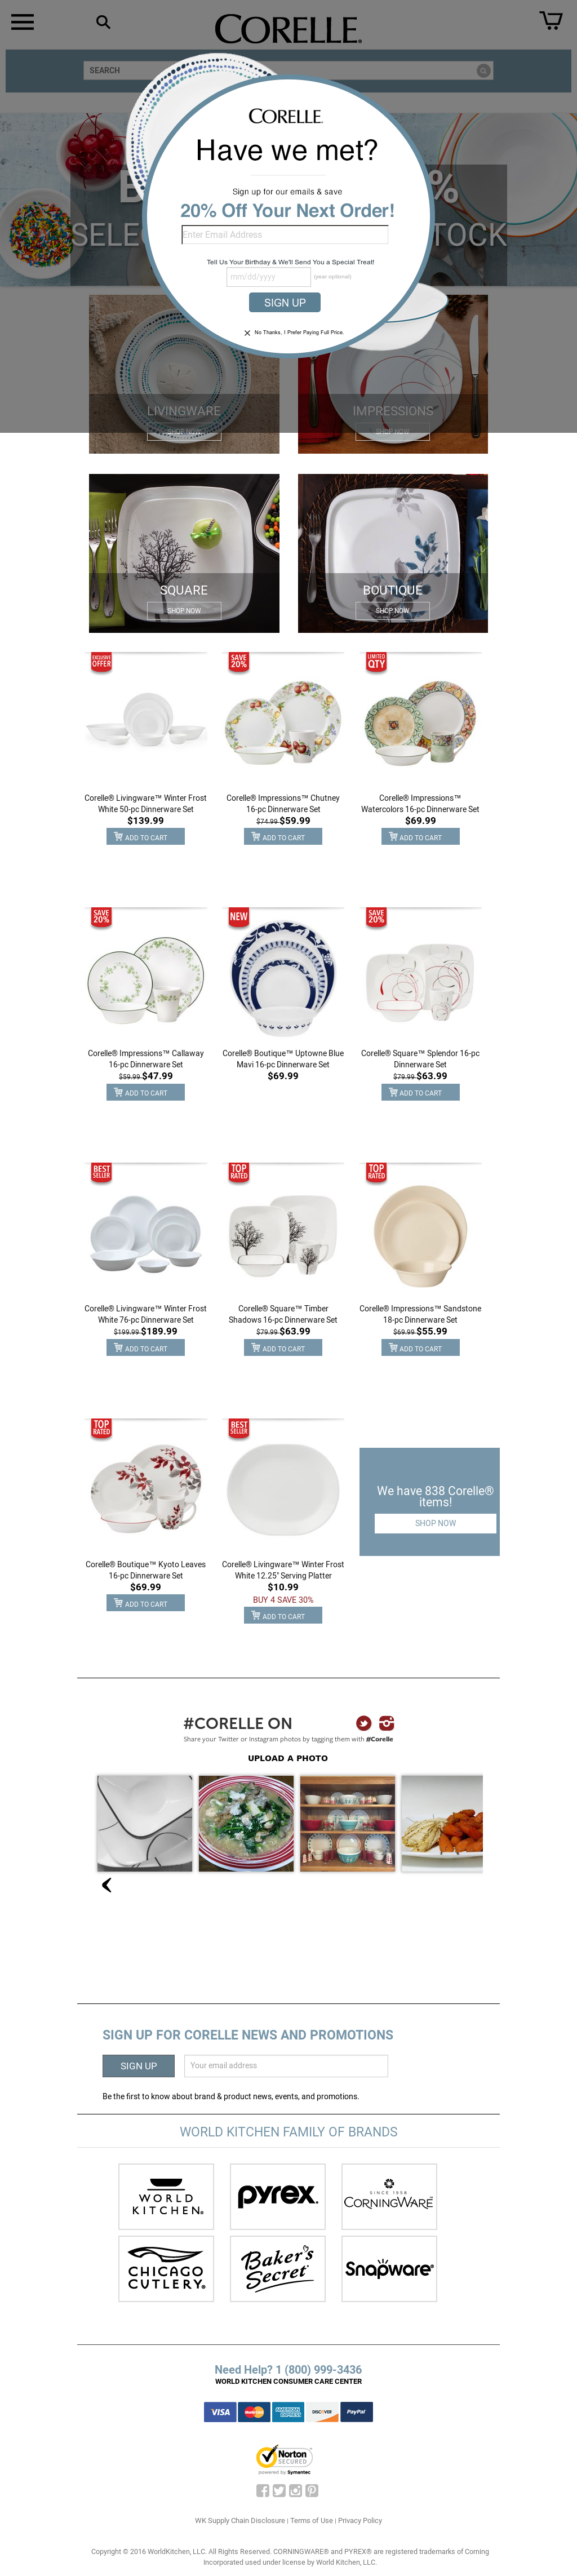 Corelle Competitors, Revenue and Employees - Owler Company Profile